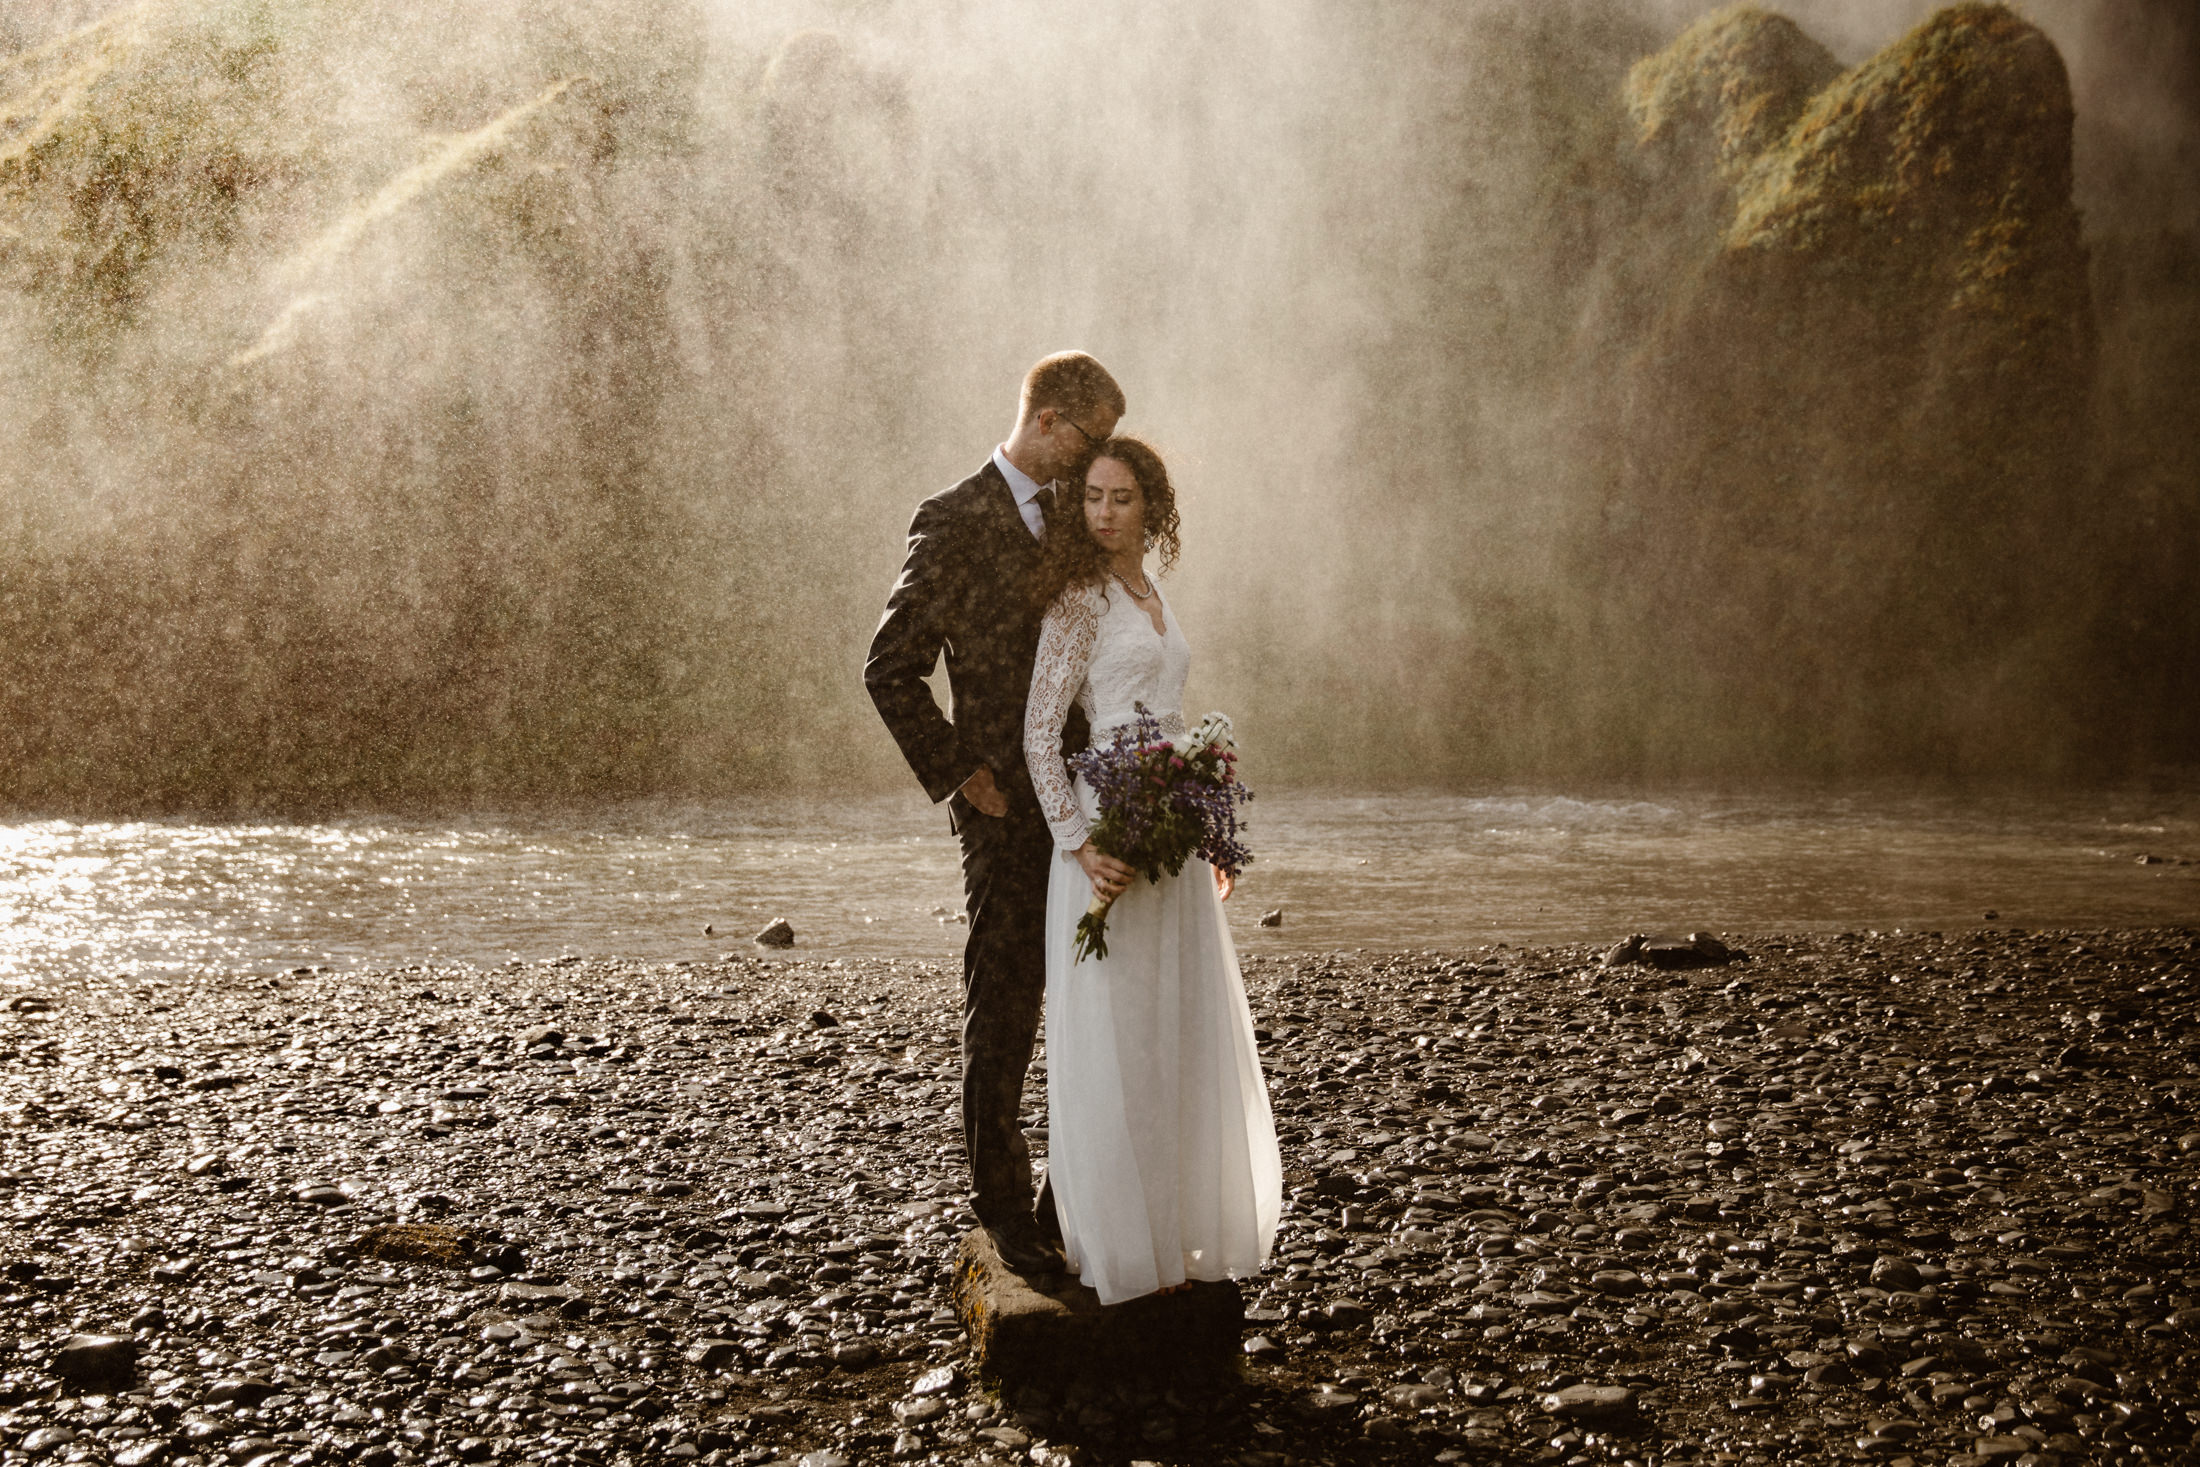 A couple has an intimate wedding in Iceland, just the two of them surrounded by moss covered volcanic rock and spray from the waterfall.